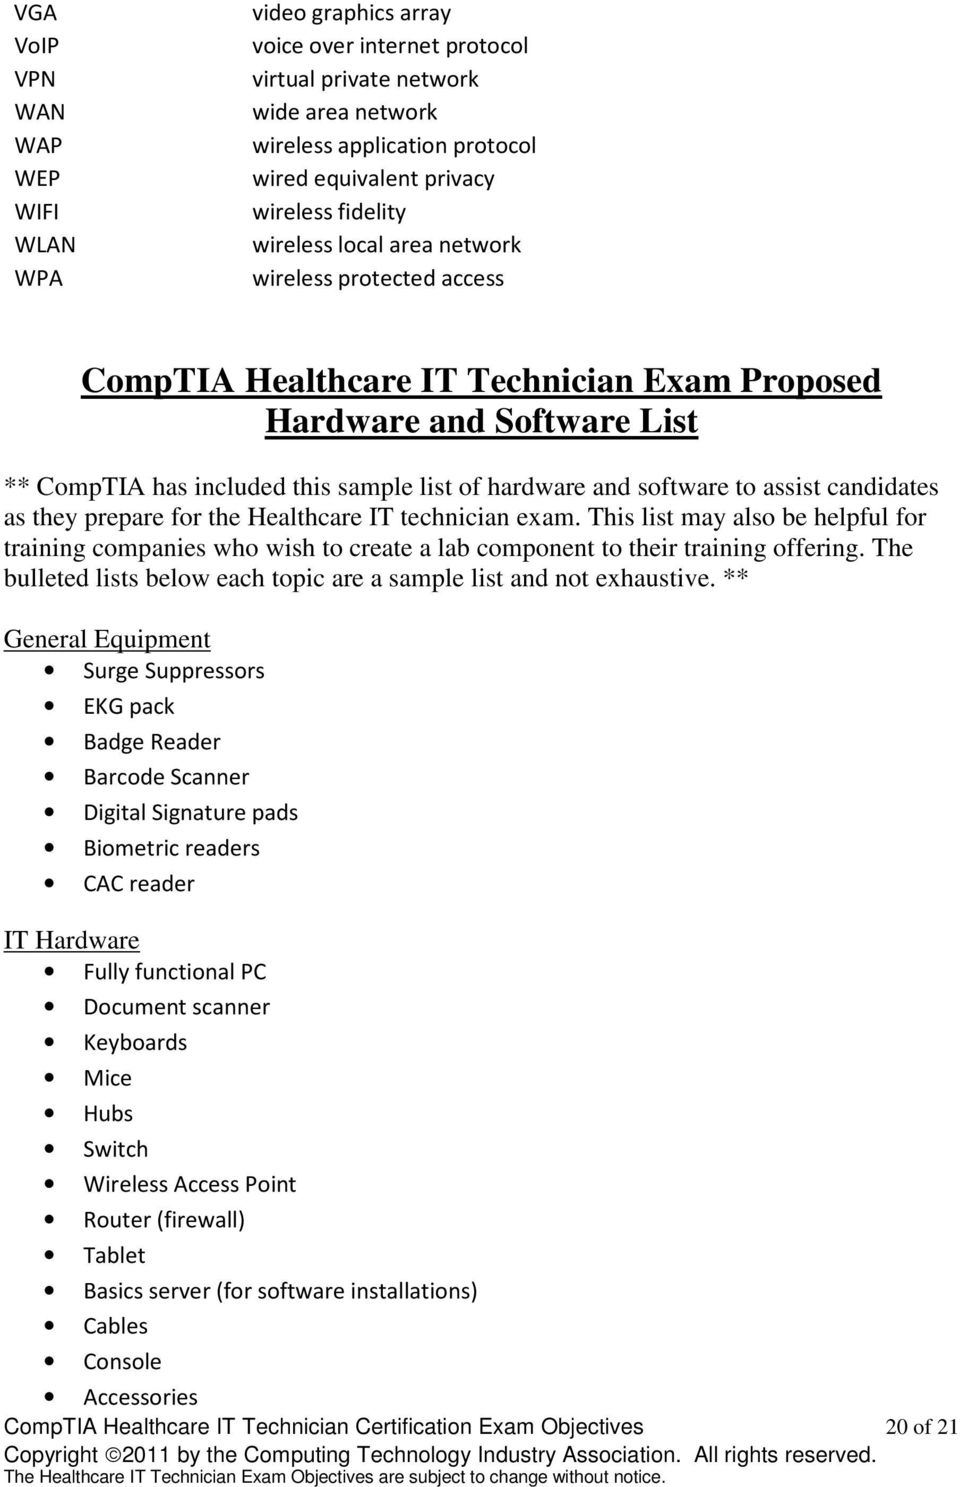 software to assist candidates as they prepare for the Healthcare IT technician exam. This list may also be helpful for training companies who wish to create a lab component to their training offering.